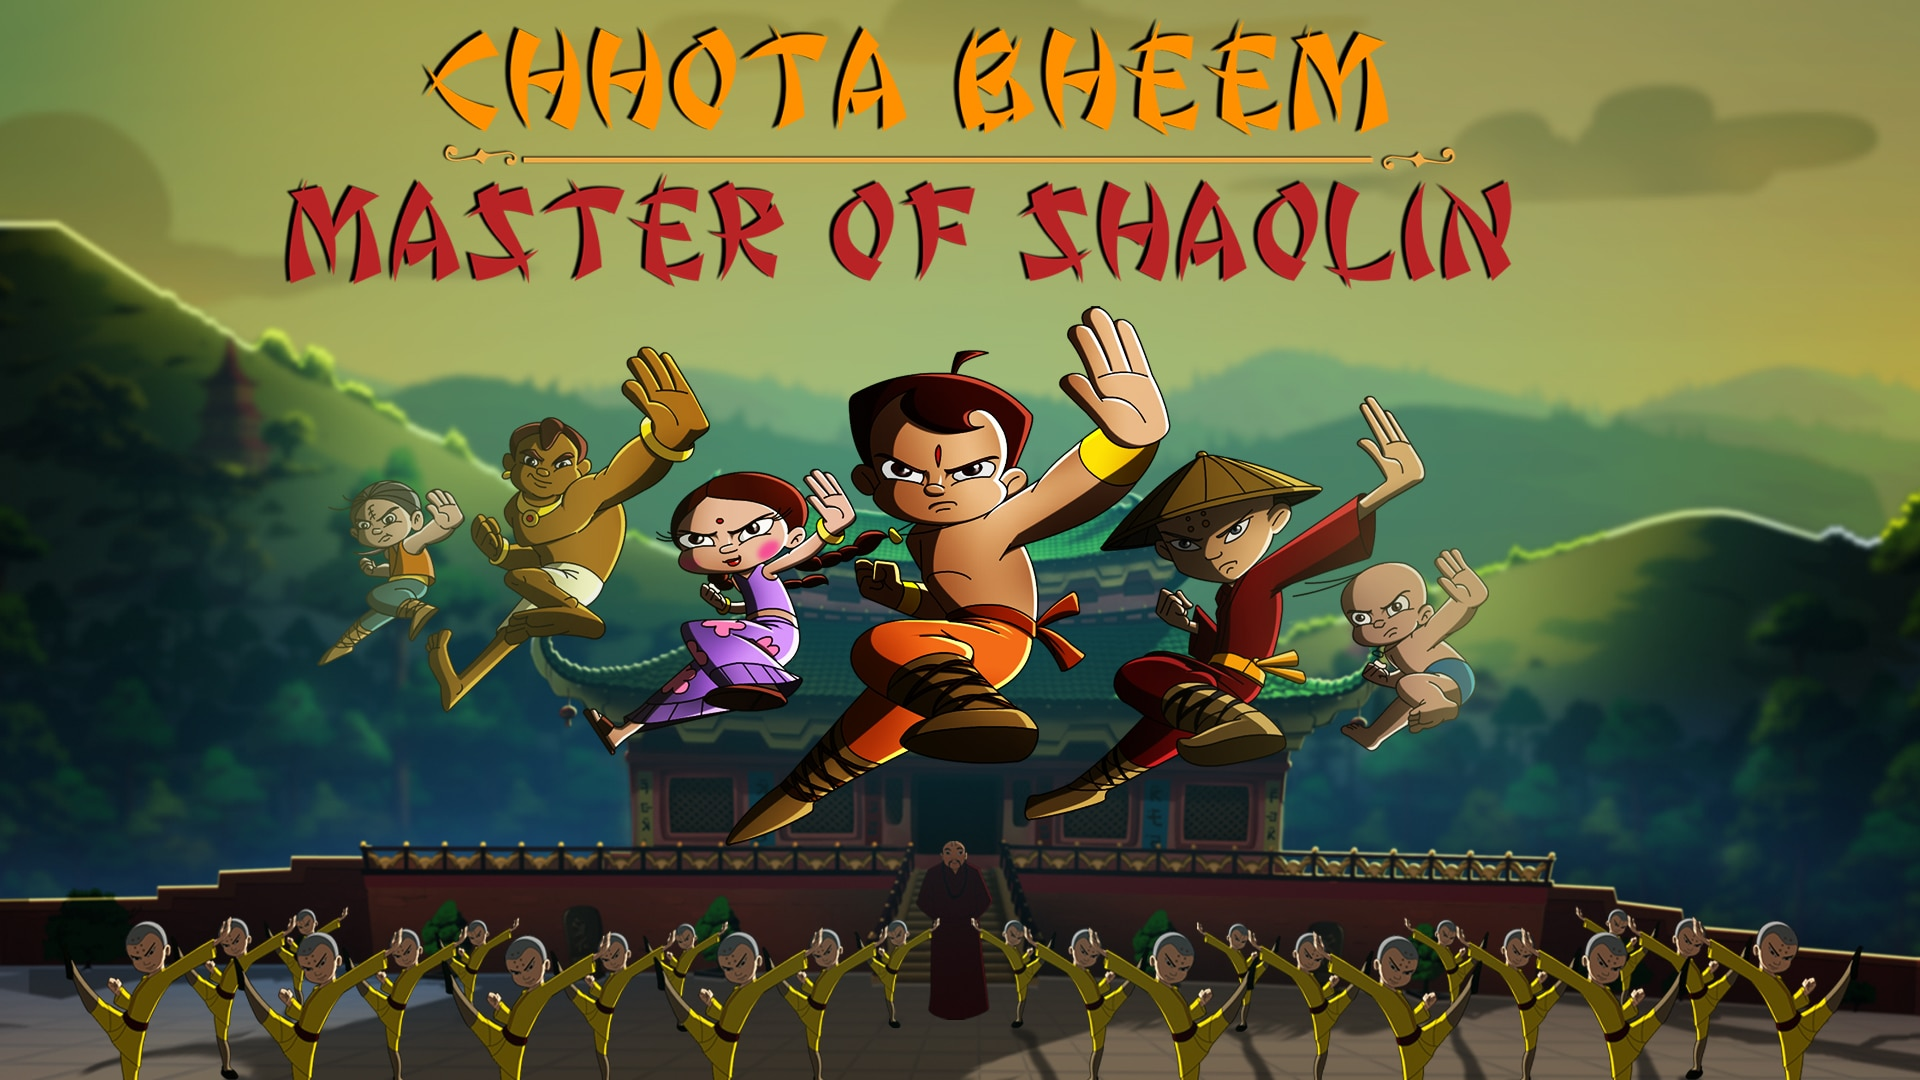 Chhota Bheem Master of Shaolin (2011) Full Movie In Telugu